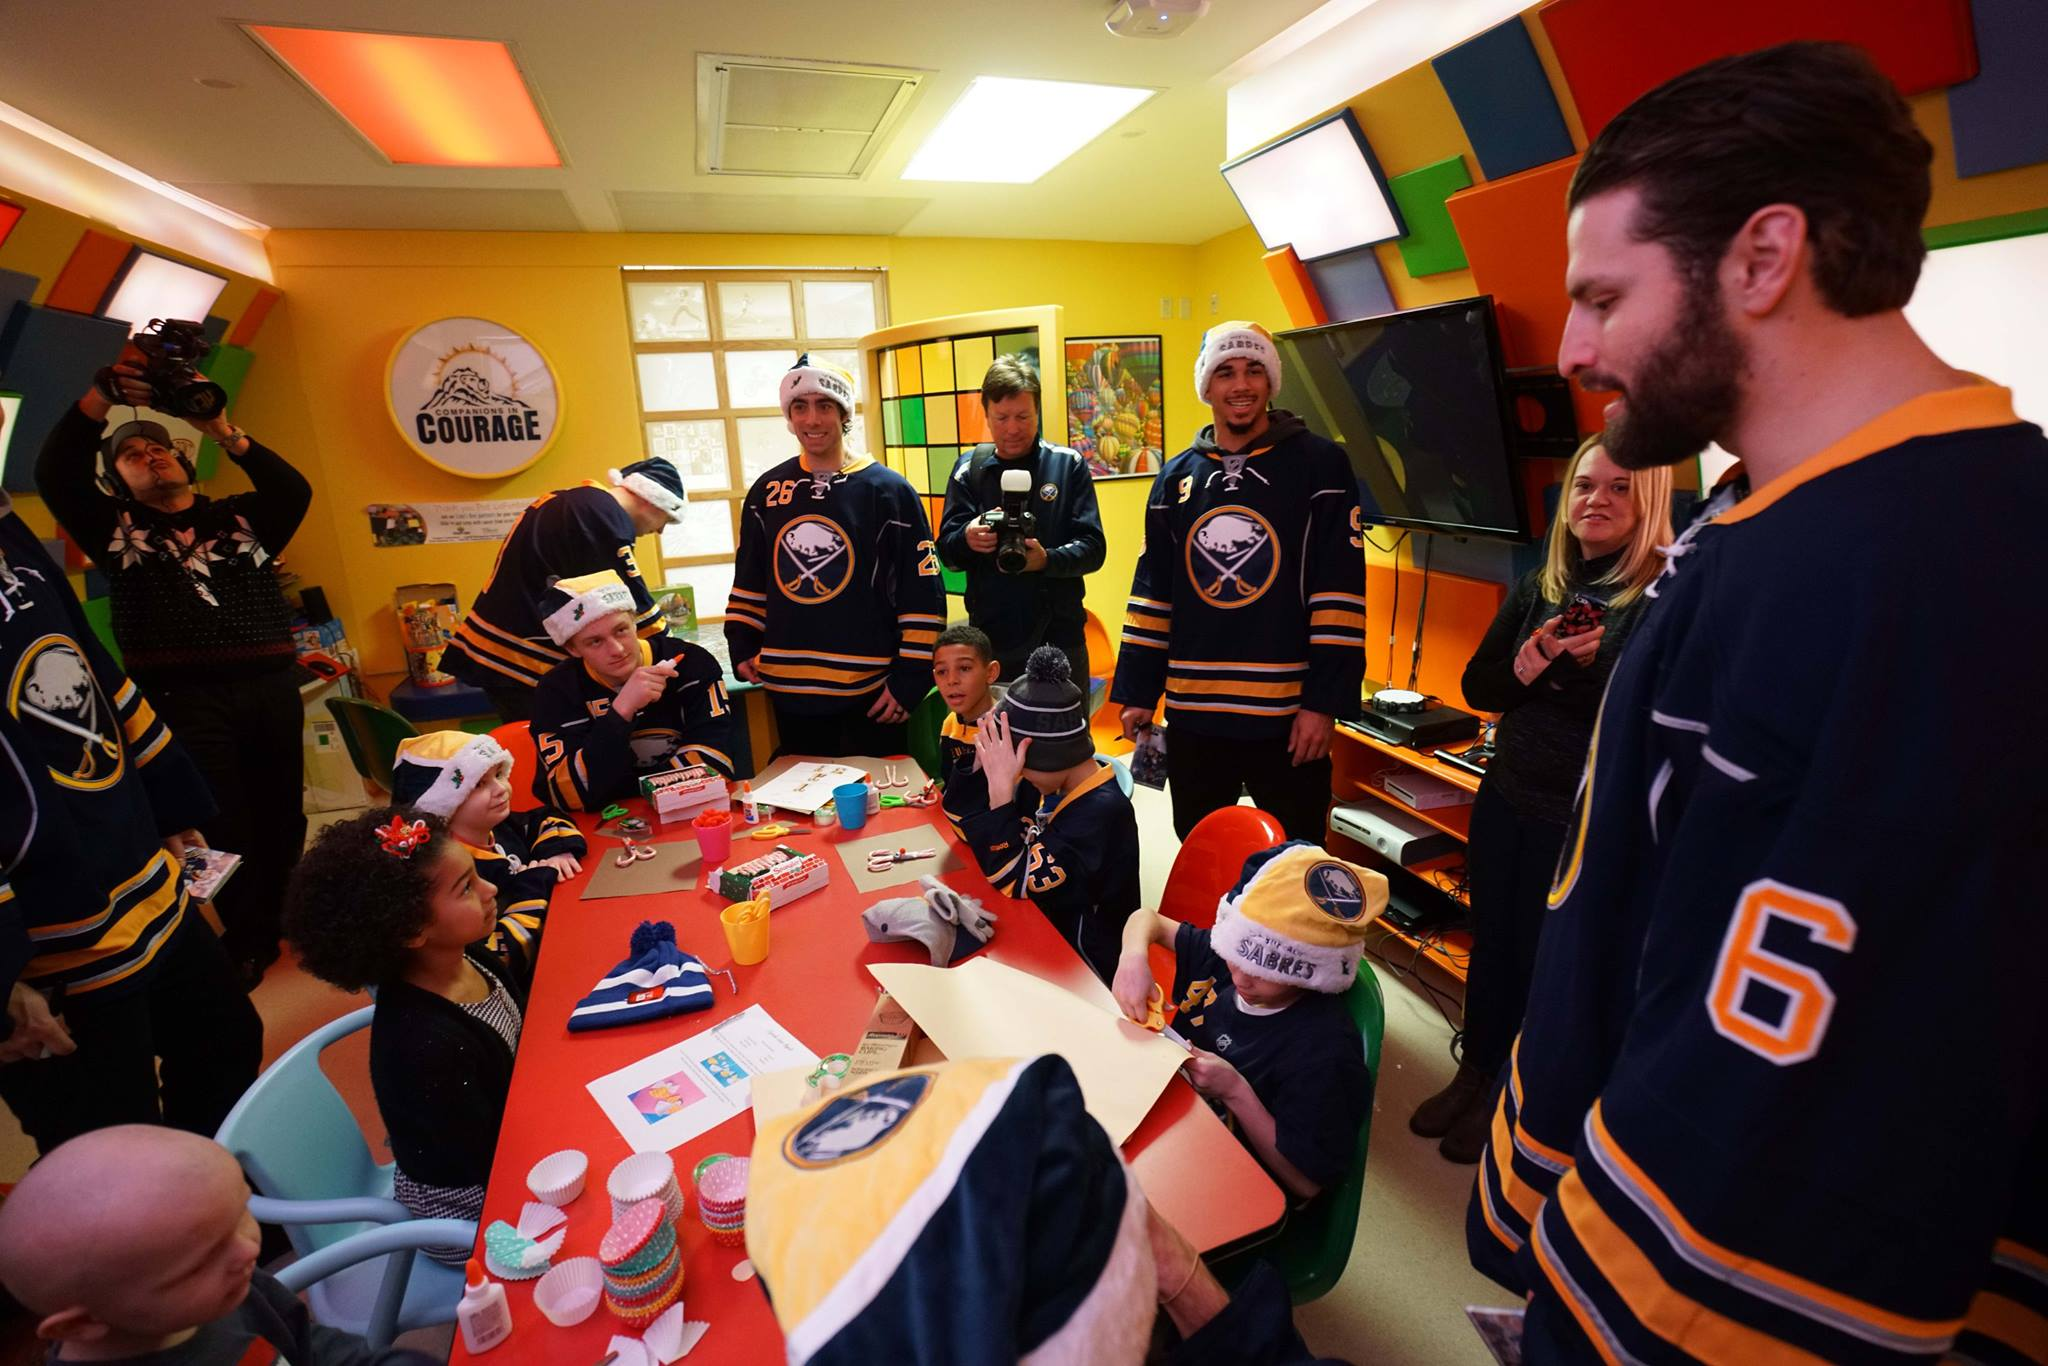 Members of the Sabres, including Matt Moulson, Evander Kane and Mike Weber visit with young patients in the Lion's Den during a visit to RPCI on December 16, 2015.